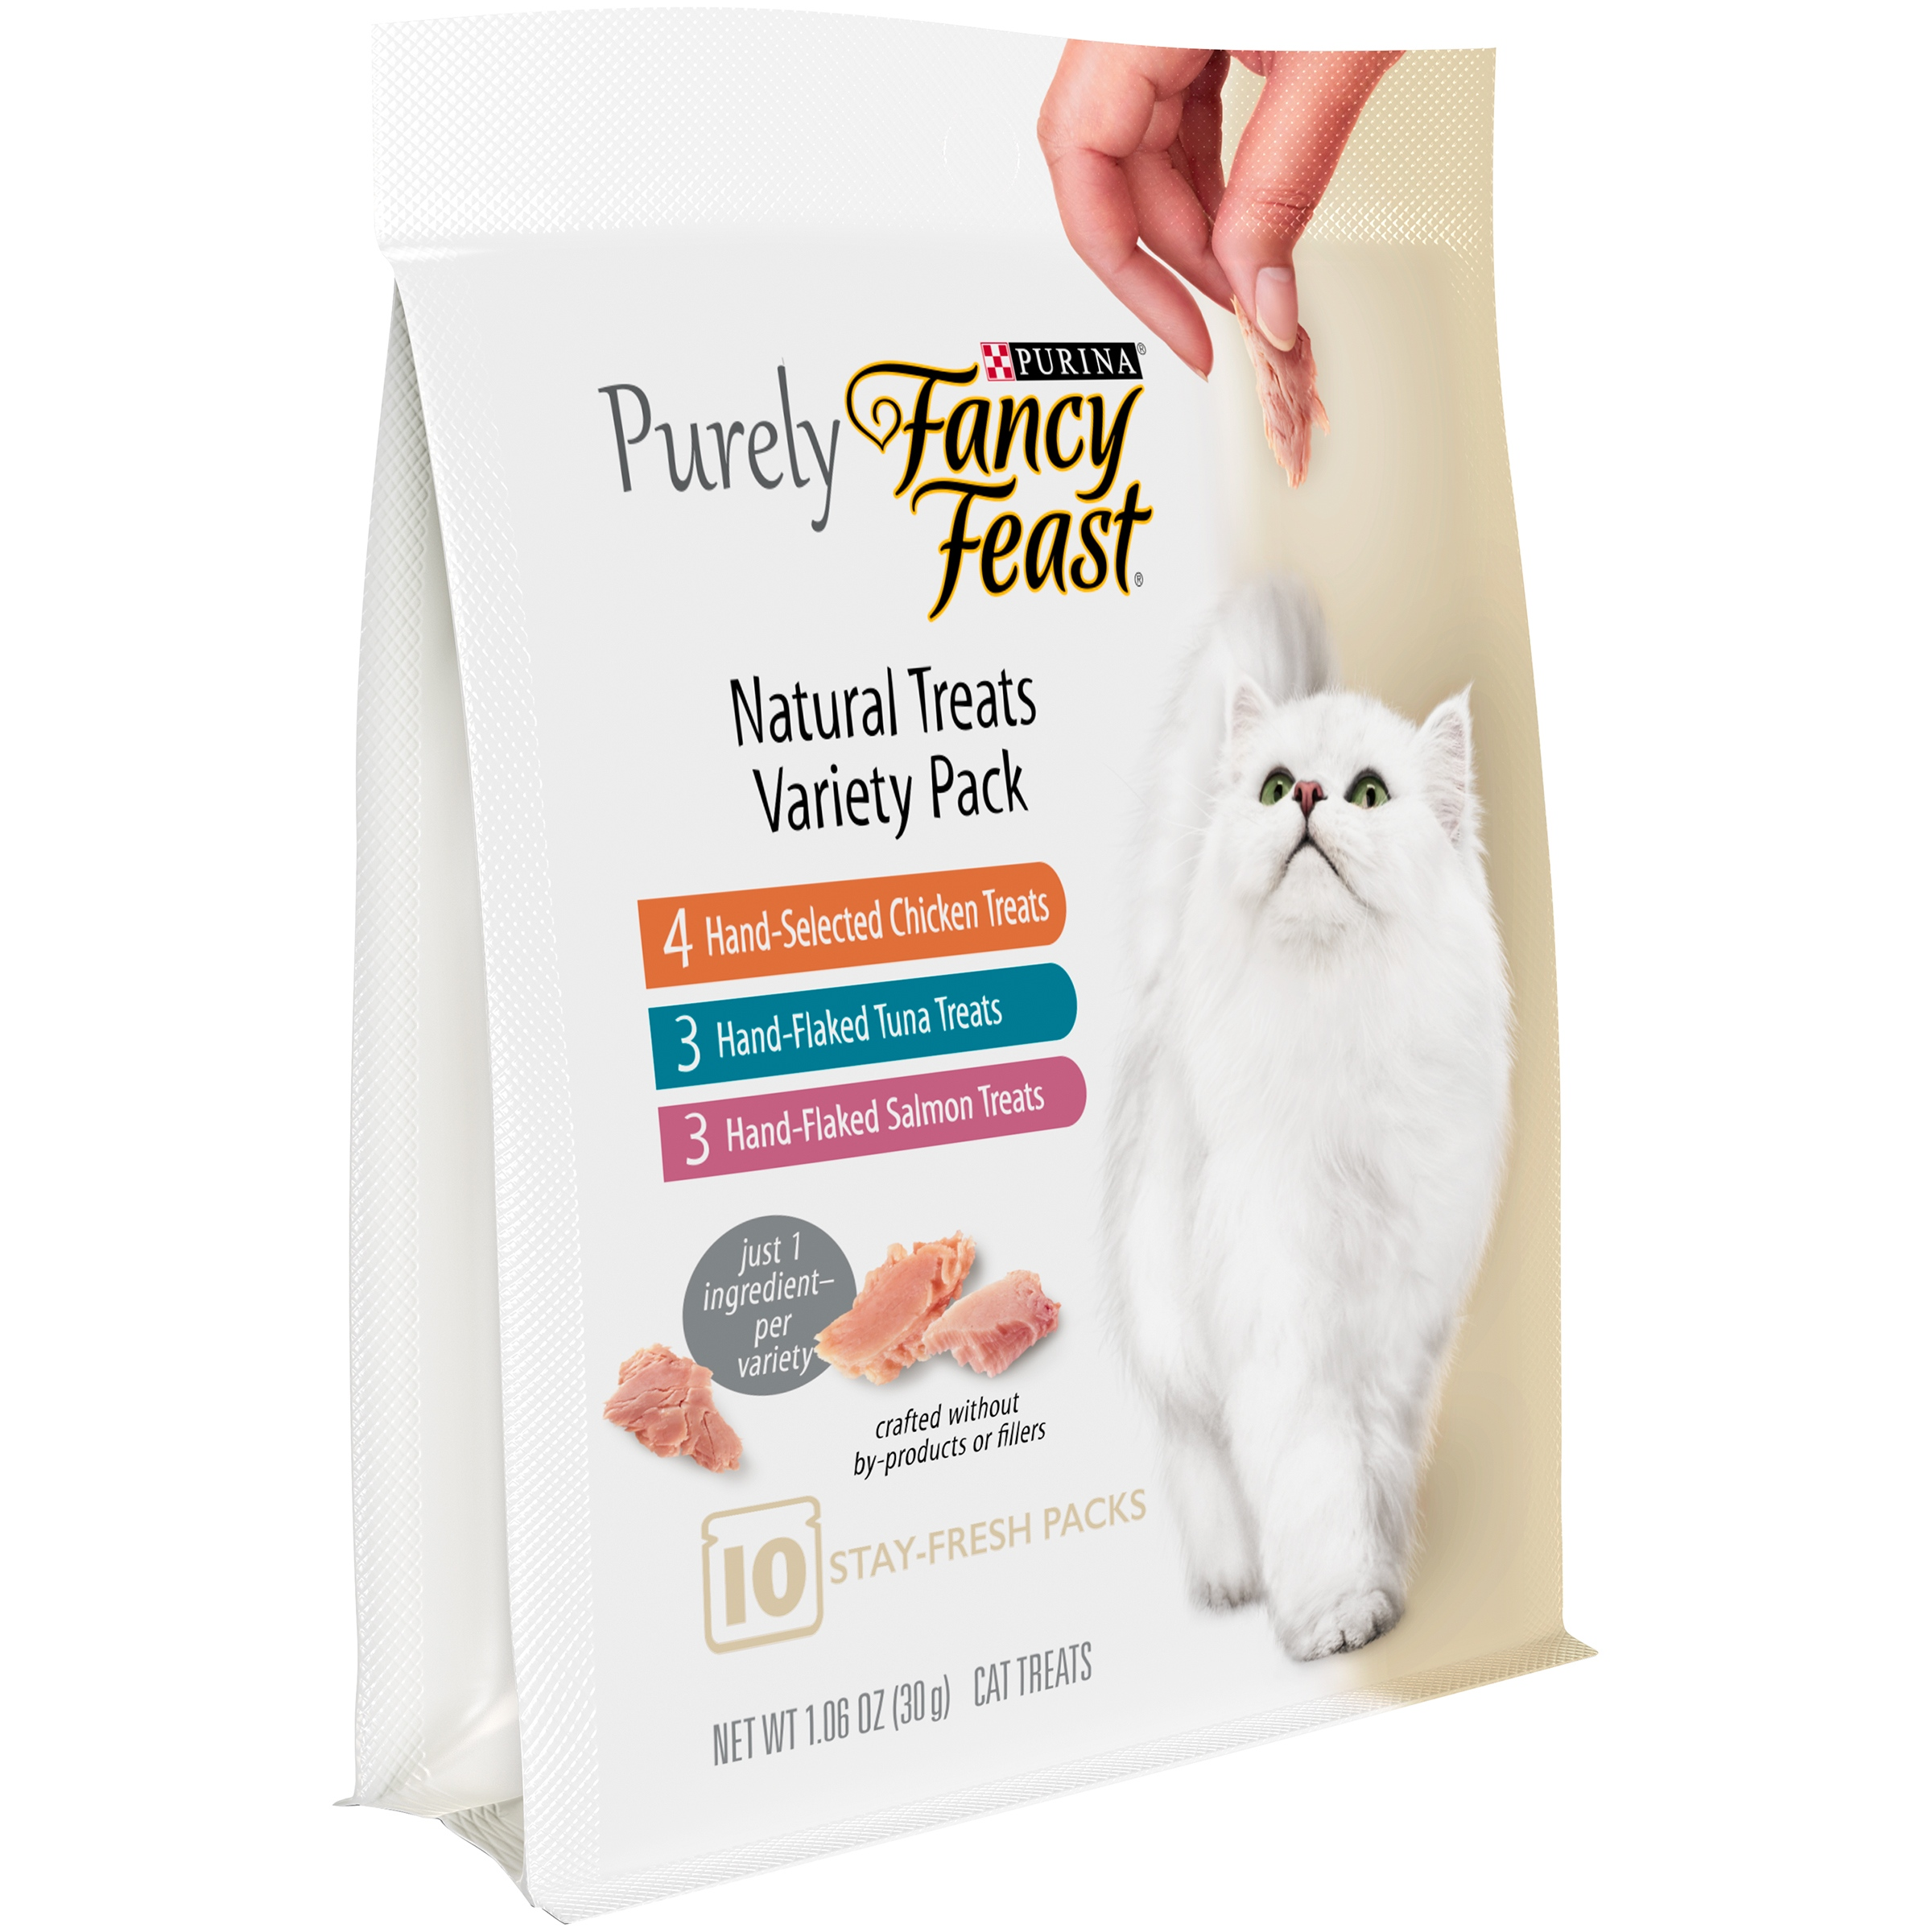 (2 Pack) Purina Fancy Feast Purely Natural Treats Variety Pack Cat Treats 1.06 oz. Pouch